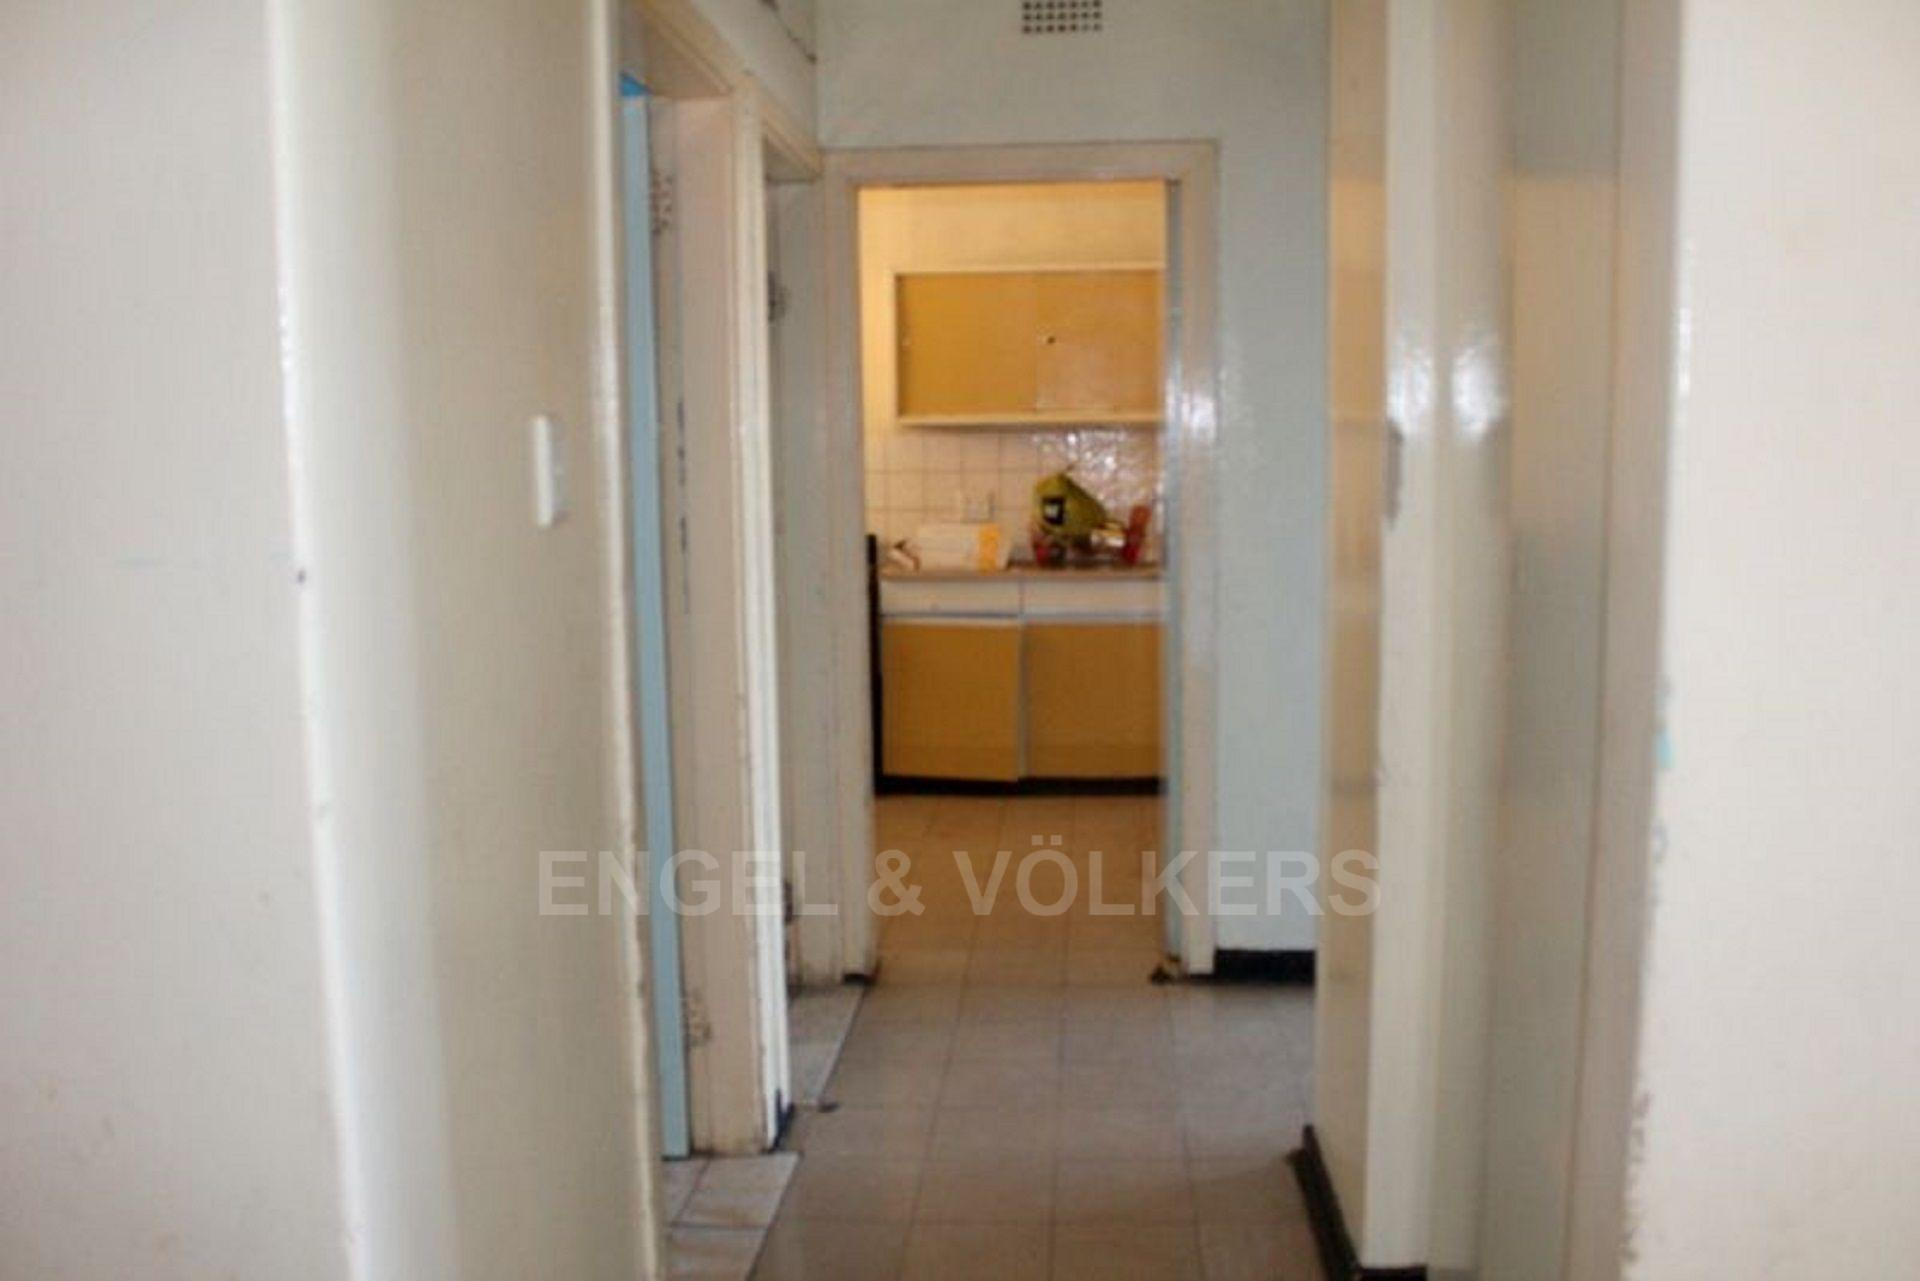 Apartment in Hillbrow - 1480423_large.jpg